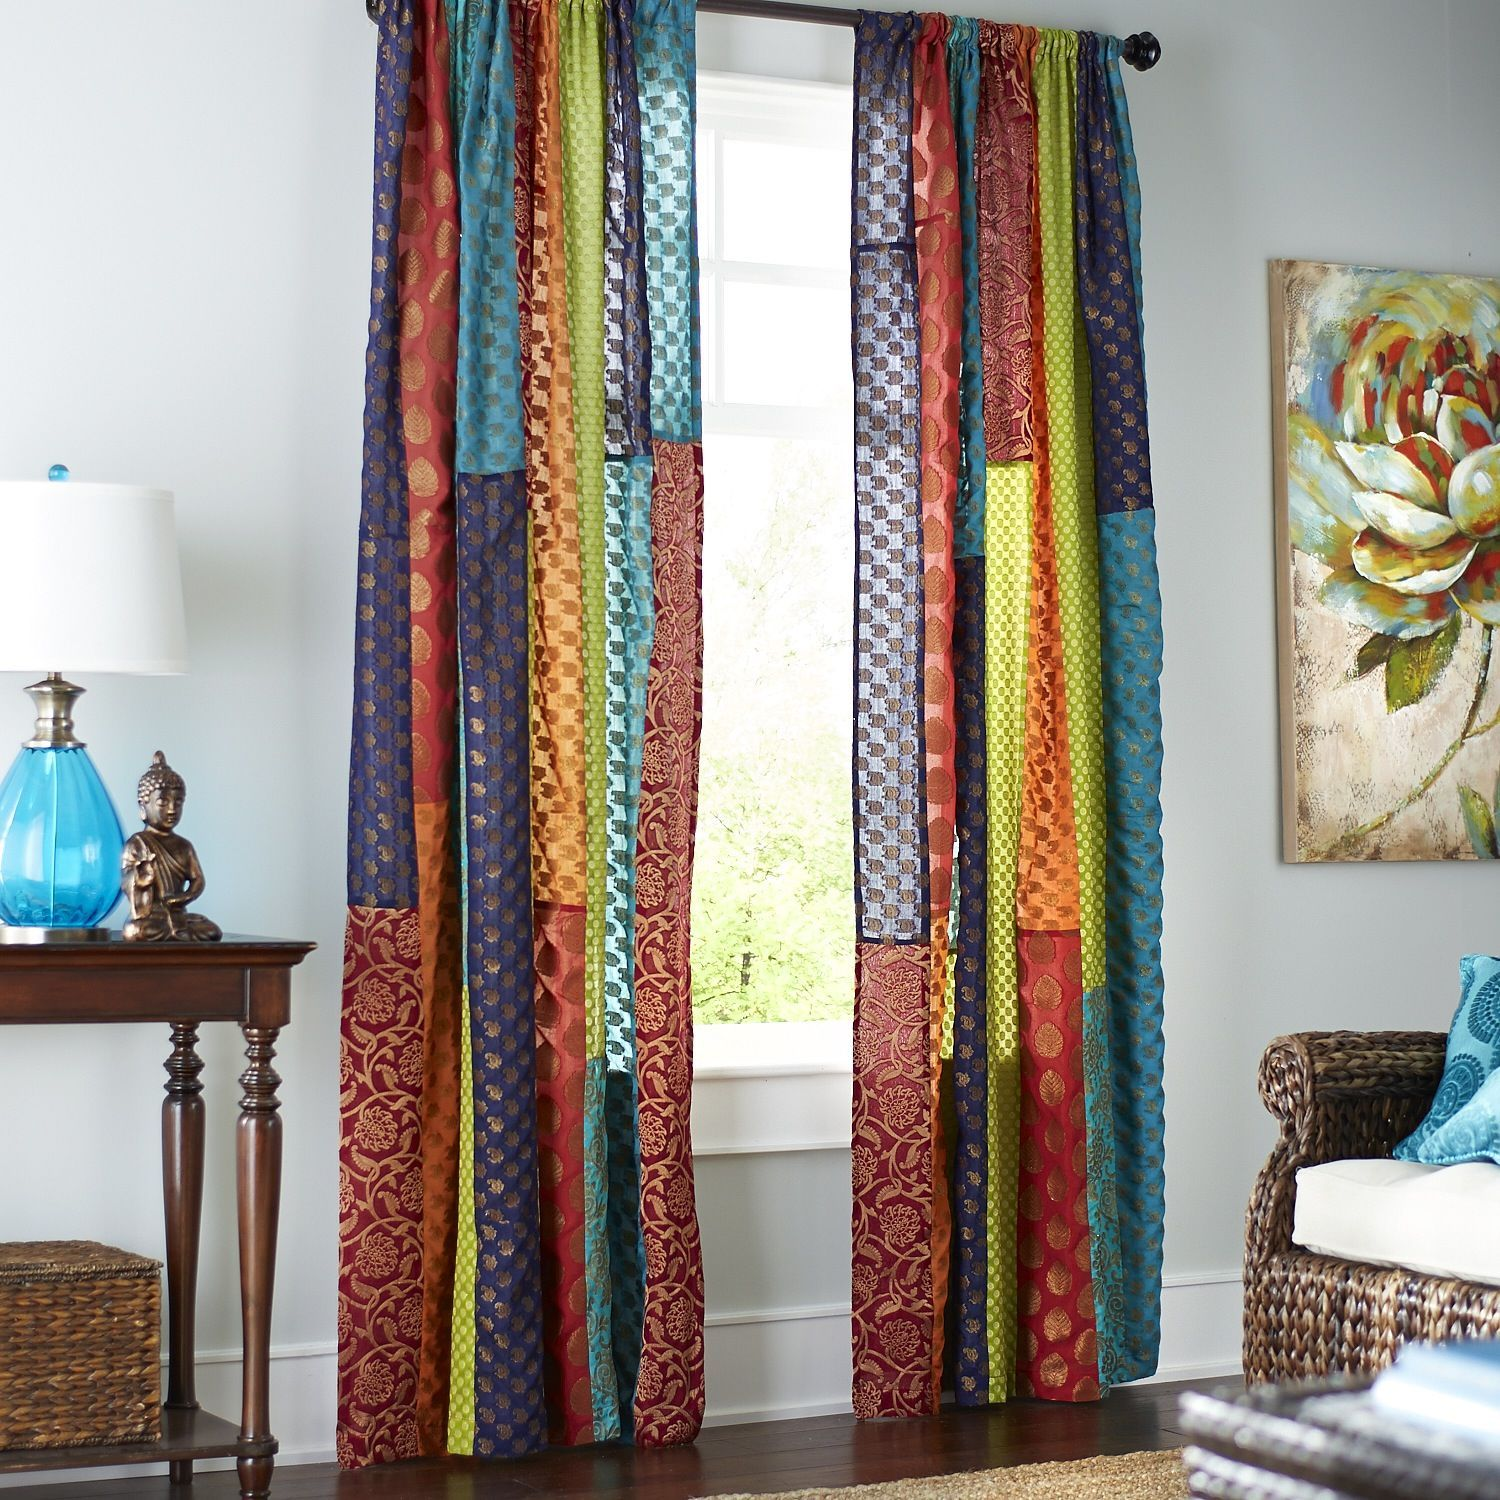 Sari Patchwork Curtain  Pier 1 Imports  New House in 2019  Pinterest  Vorhnge Gardinen and